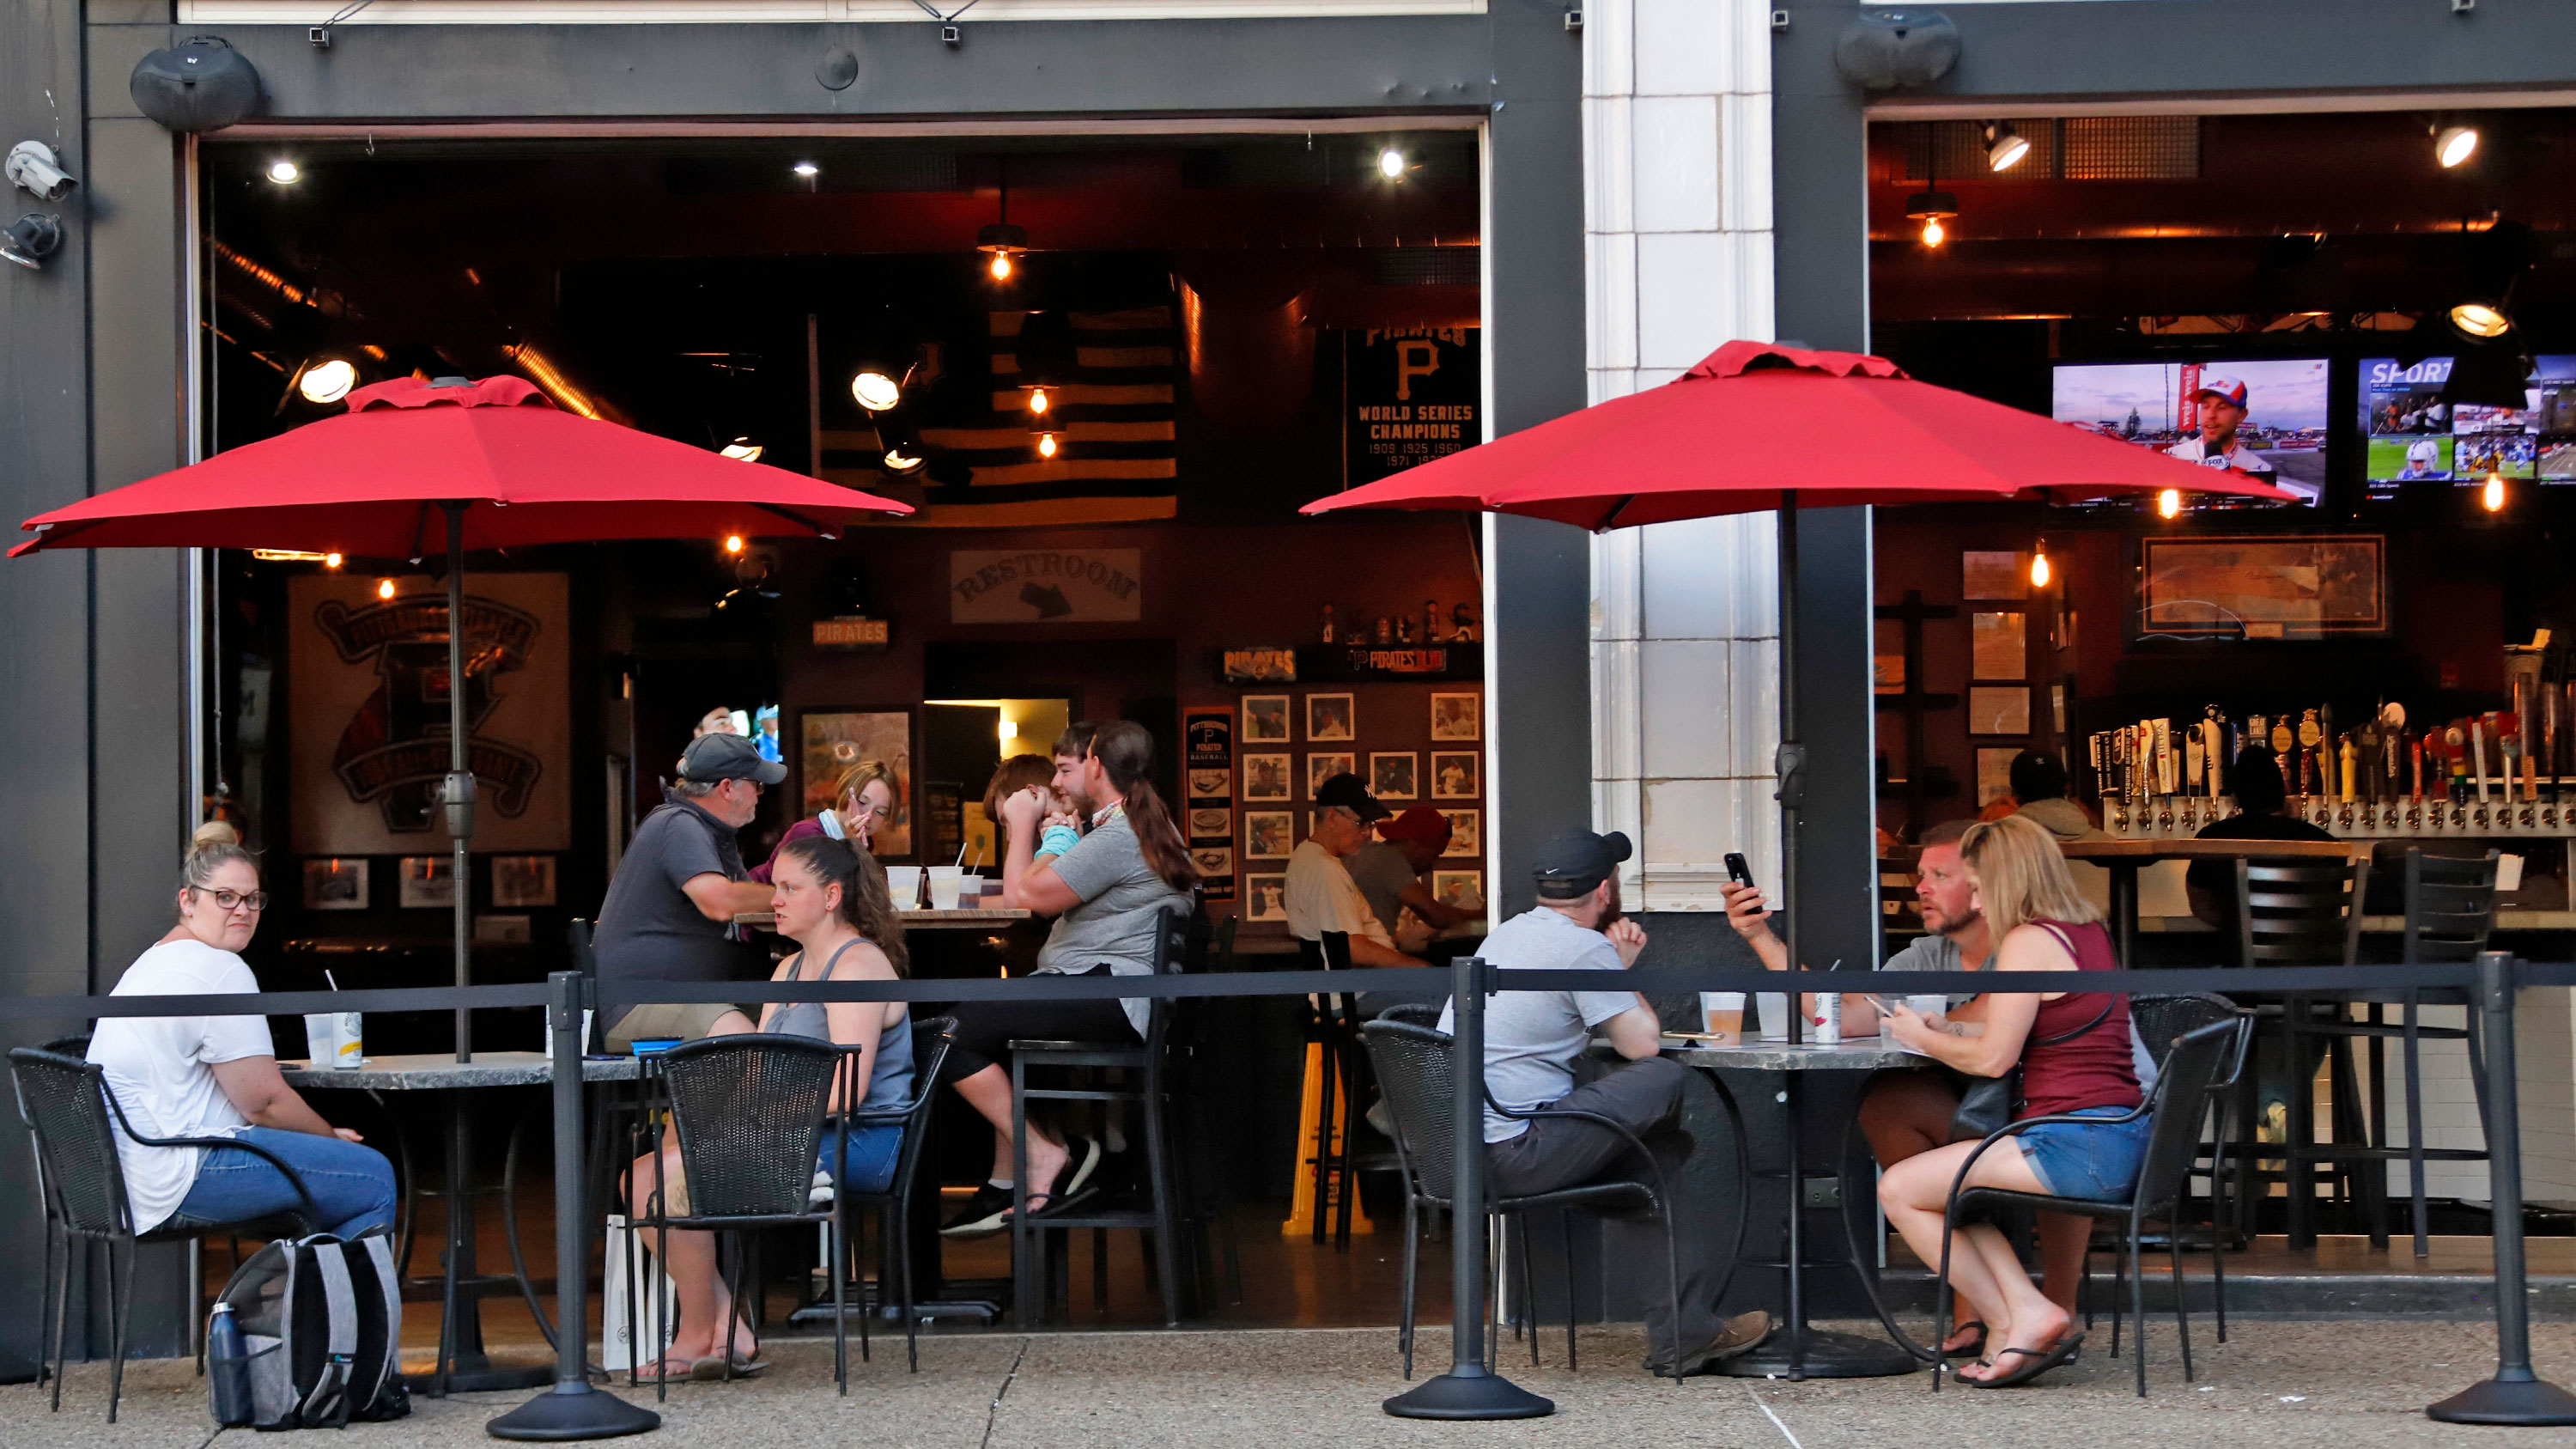 People dine at a restaurant on June 28 in Pittsburgh, Pennsylvania.